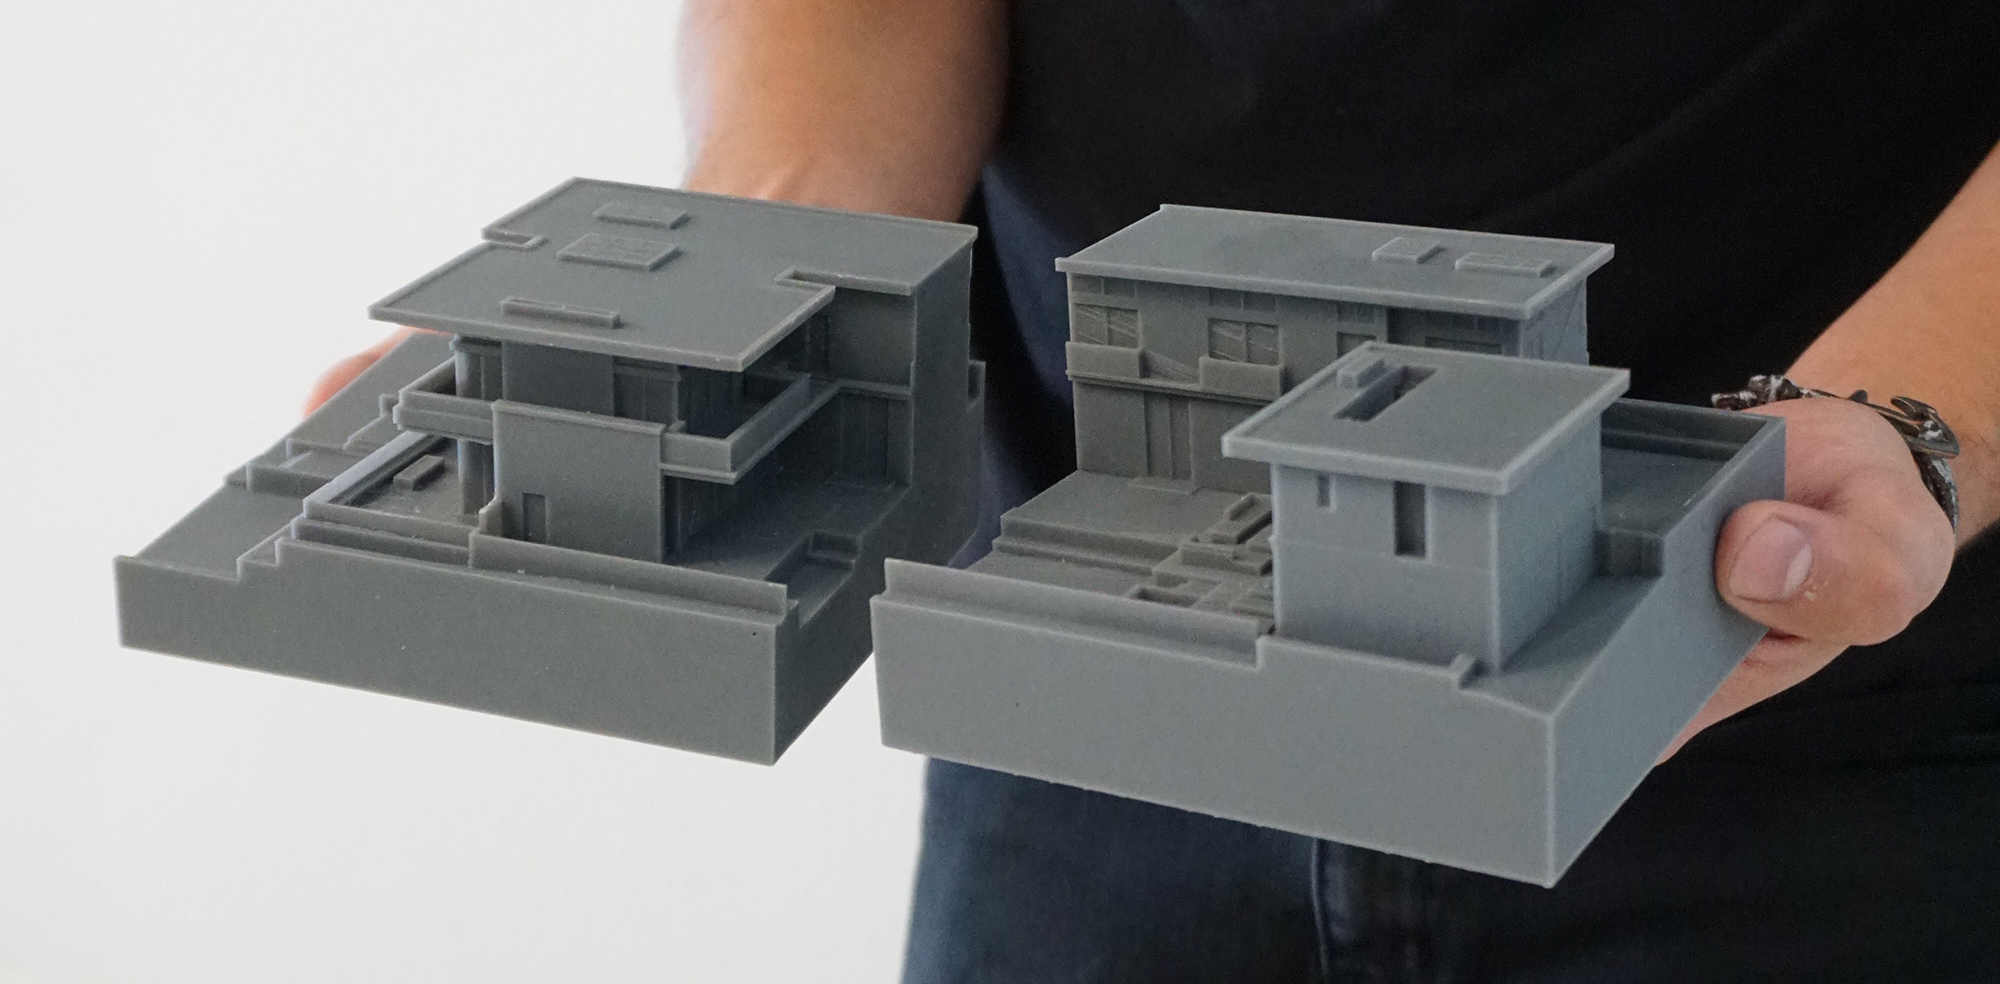 An architectural model